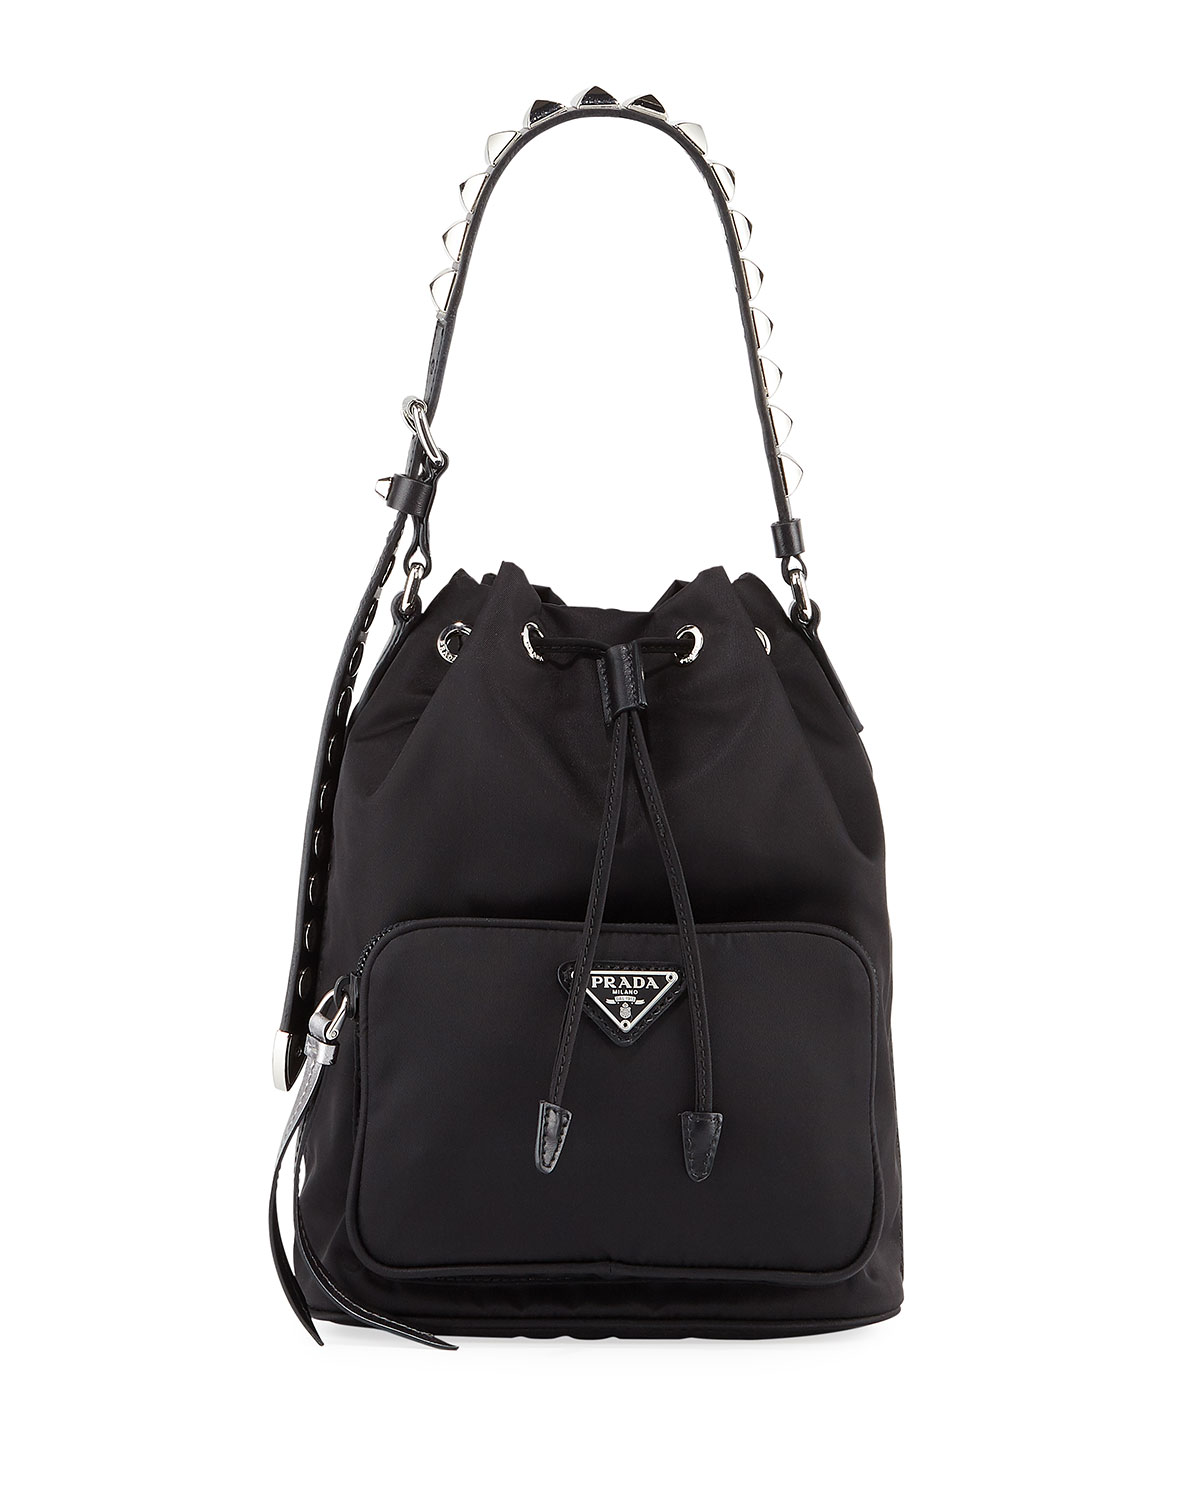 c908f16383d8c4 Prada Prada Black Nylon Bucket Bag with Studding | Neiman Marcus